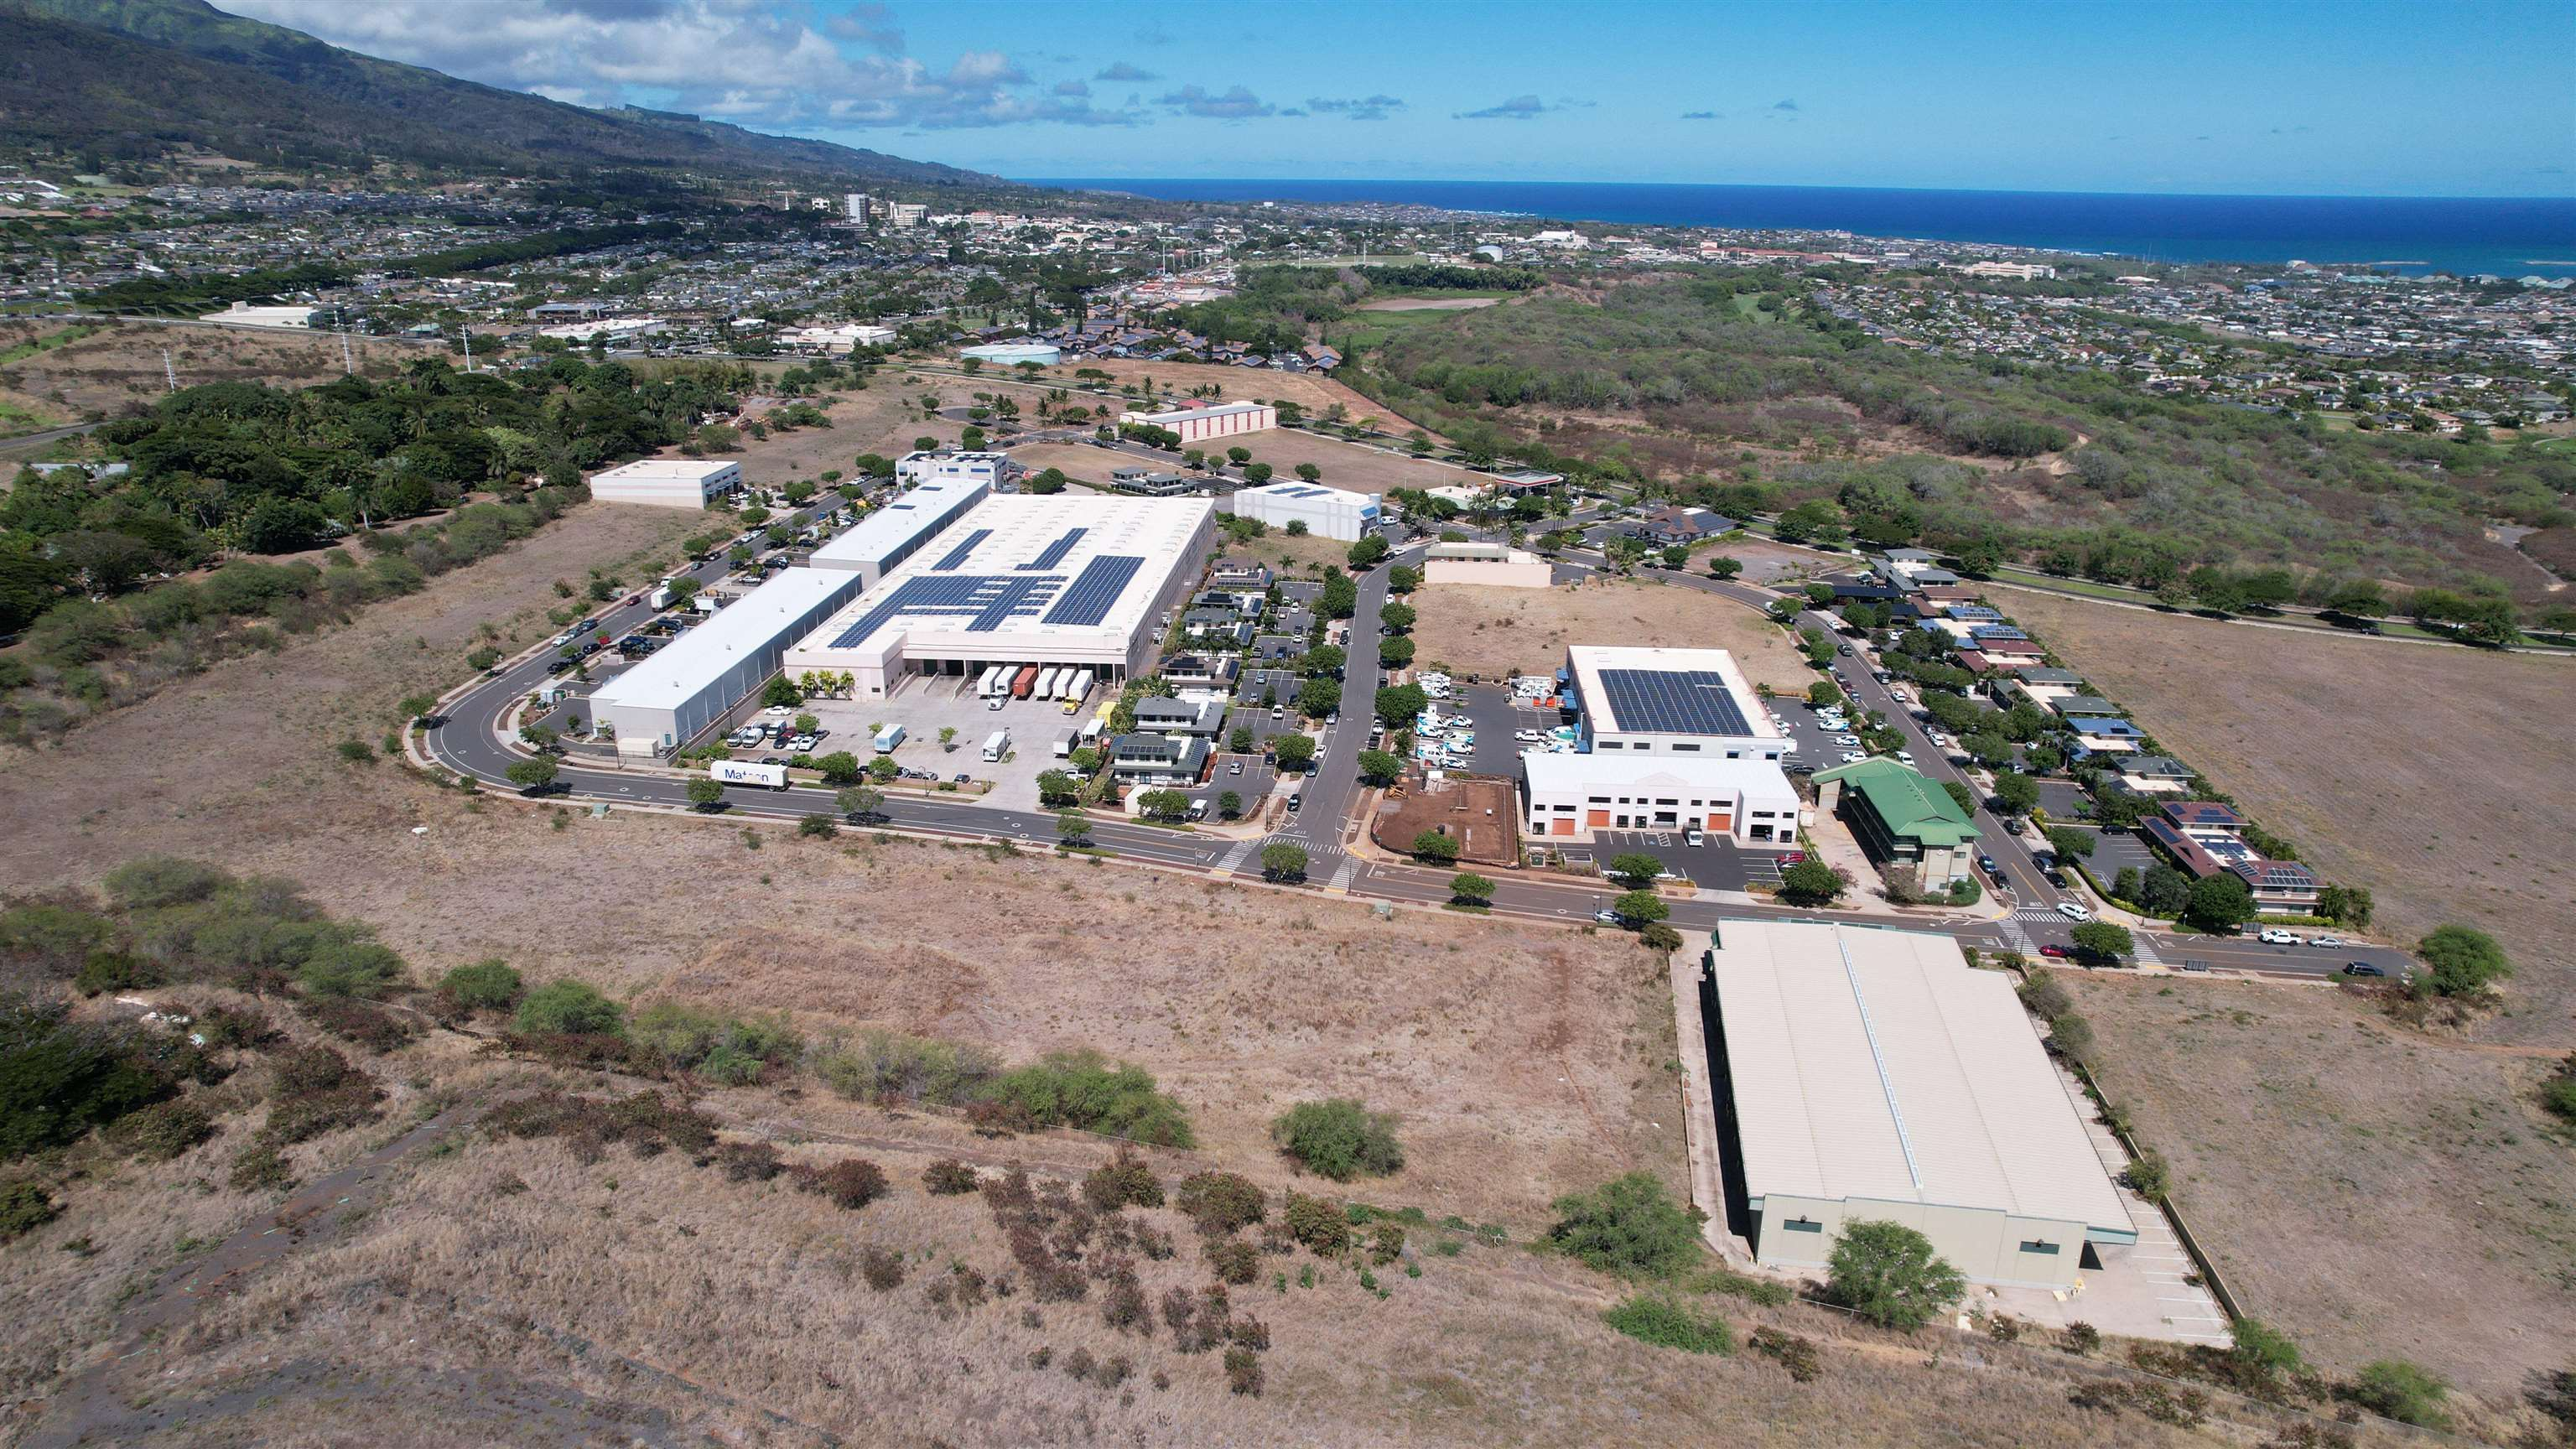 Fee simple vacant land parcel near busy intersection of Kuikahi Drive and Waiale Road.  VMX zoning allows for a wide array of uses.  Ready to build lot with drainage and utilities stubbed to site.